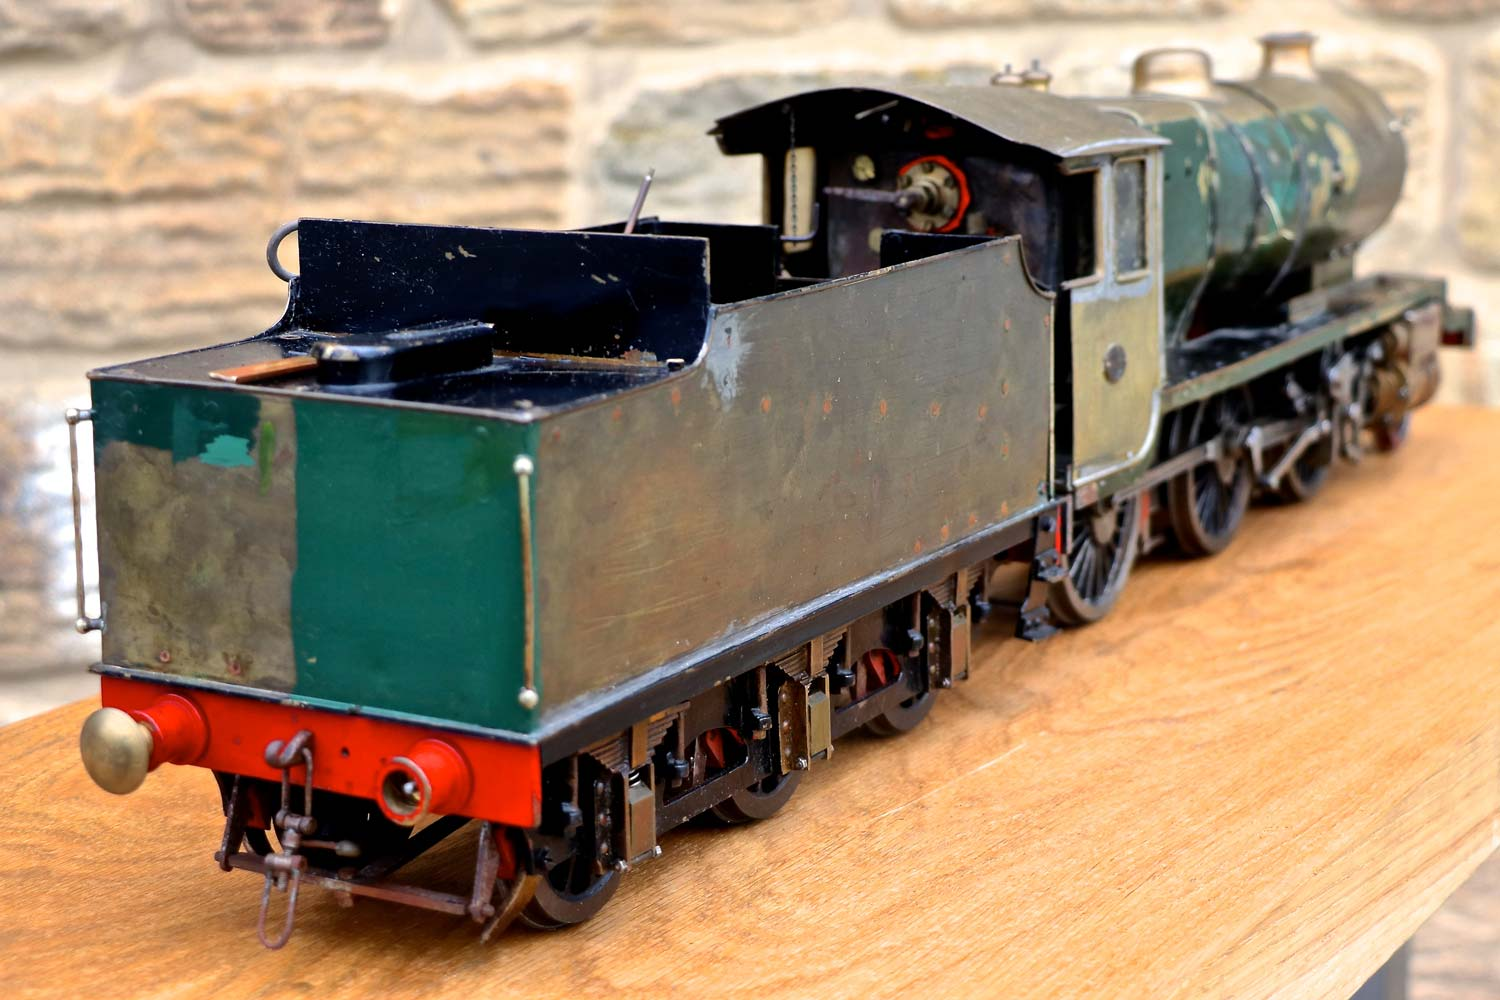 test 2-and-a-half-inch-gauge-LBSC-Lady-Dorothy-DYAK-live-steam-locomotive-for-sale-05